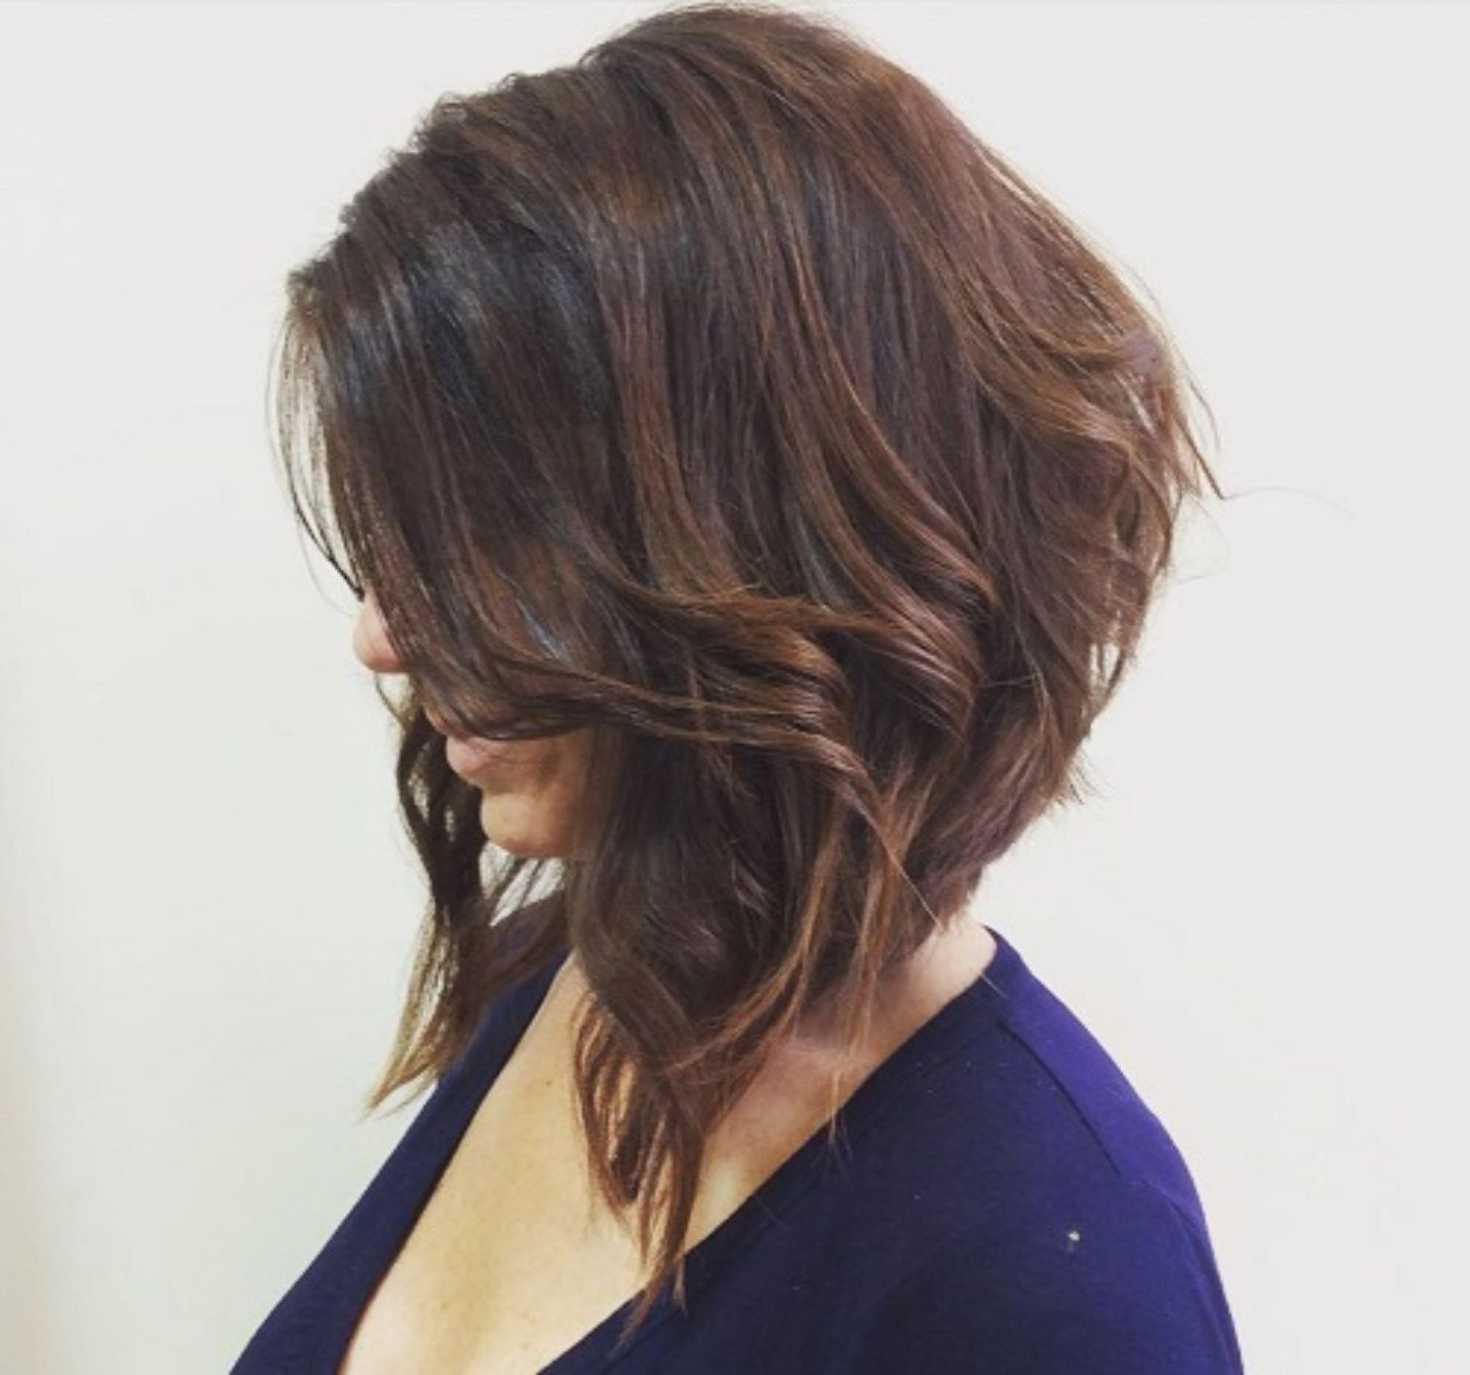 70 Best A Line Bob Hairstyles Screaming With Class And Style Intended For Slightly Angled Messy Bob Hairstyles (Gallery 2 of 20)